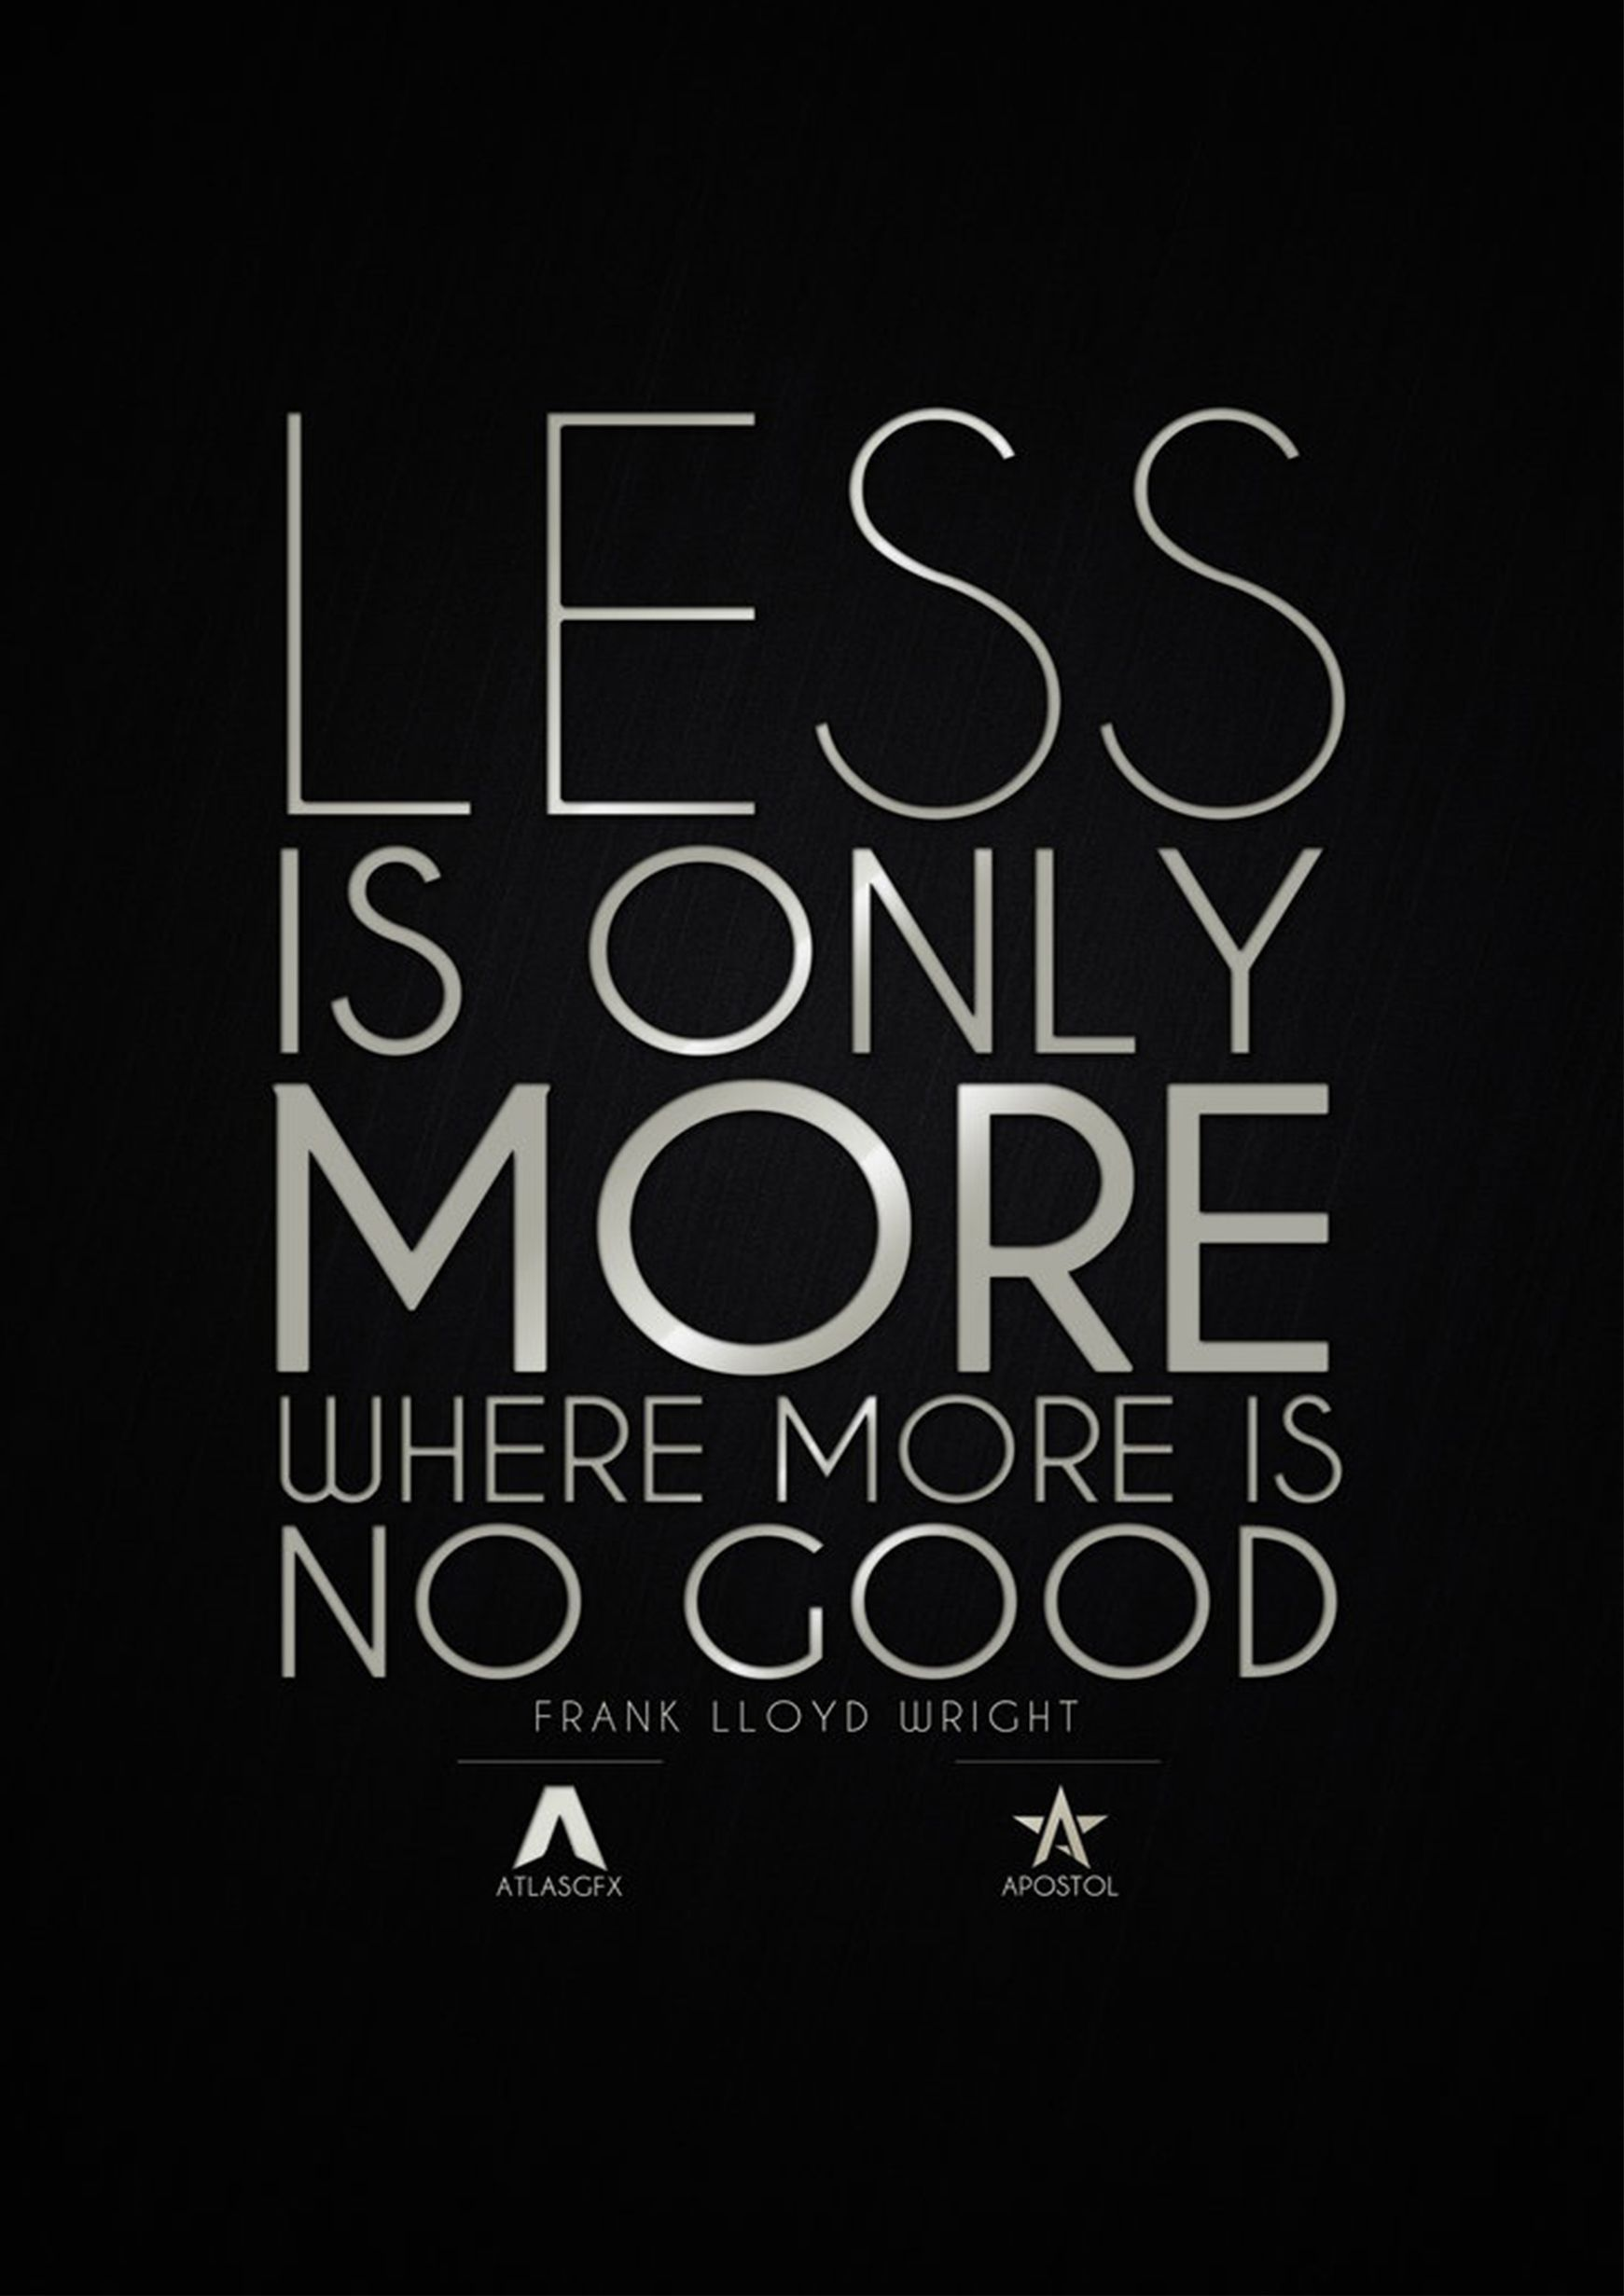 Poster design less is more -  Less Is Only More Where More Is No Good Frank L Wright